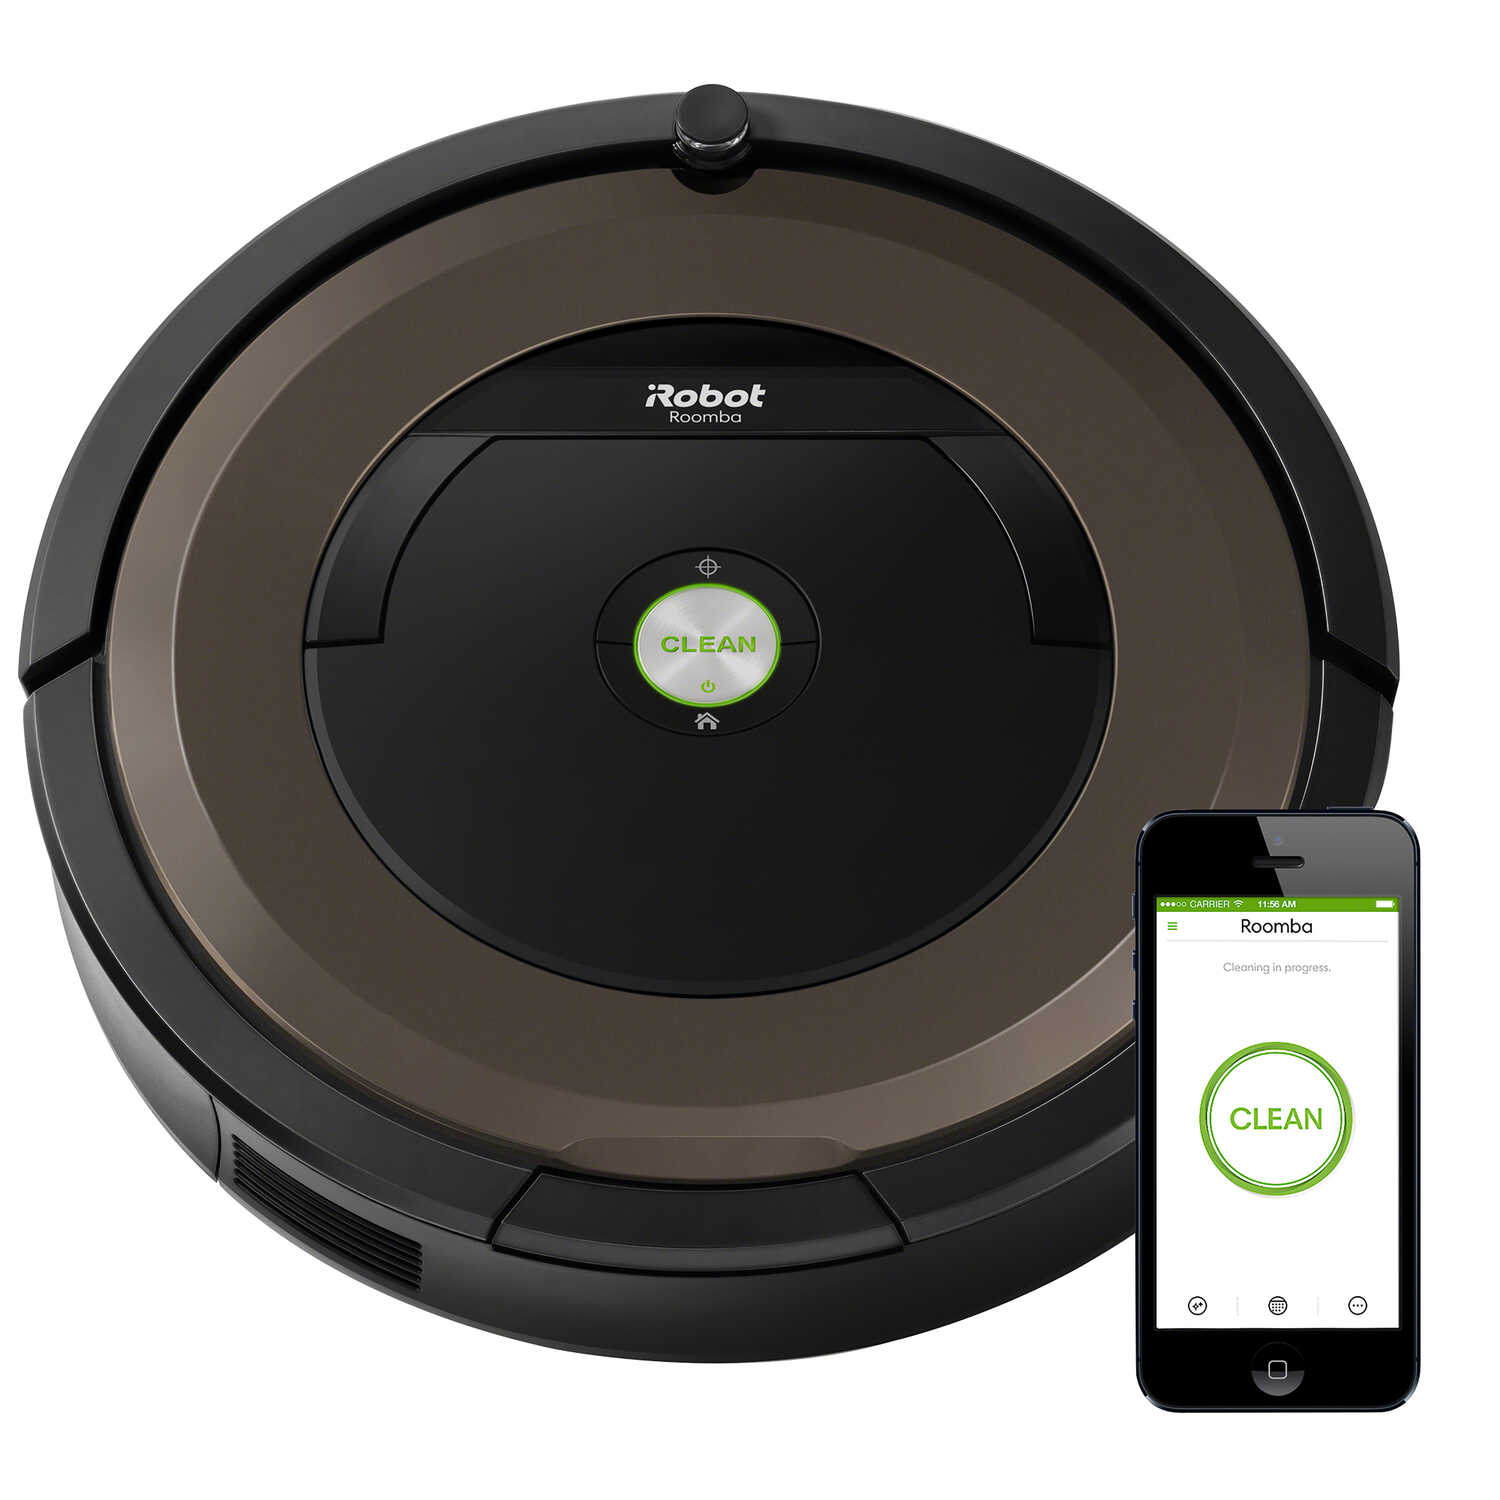 iRobot  Roomba  Bagless  Robotic Vacuum  1.8 amps Standard  Brown